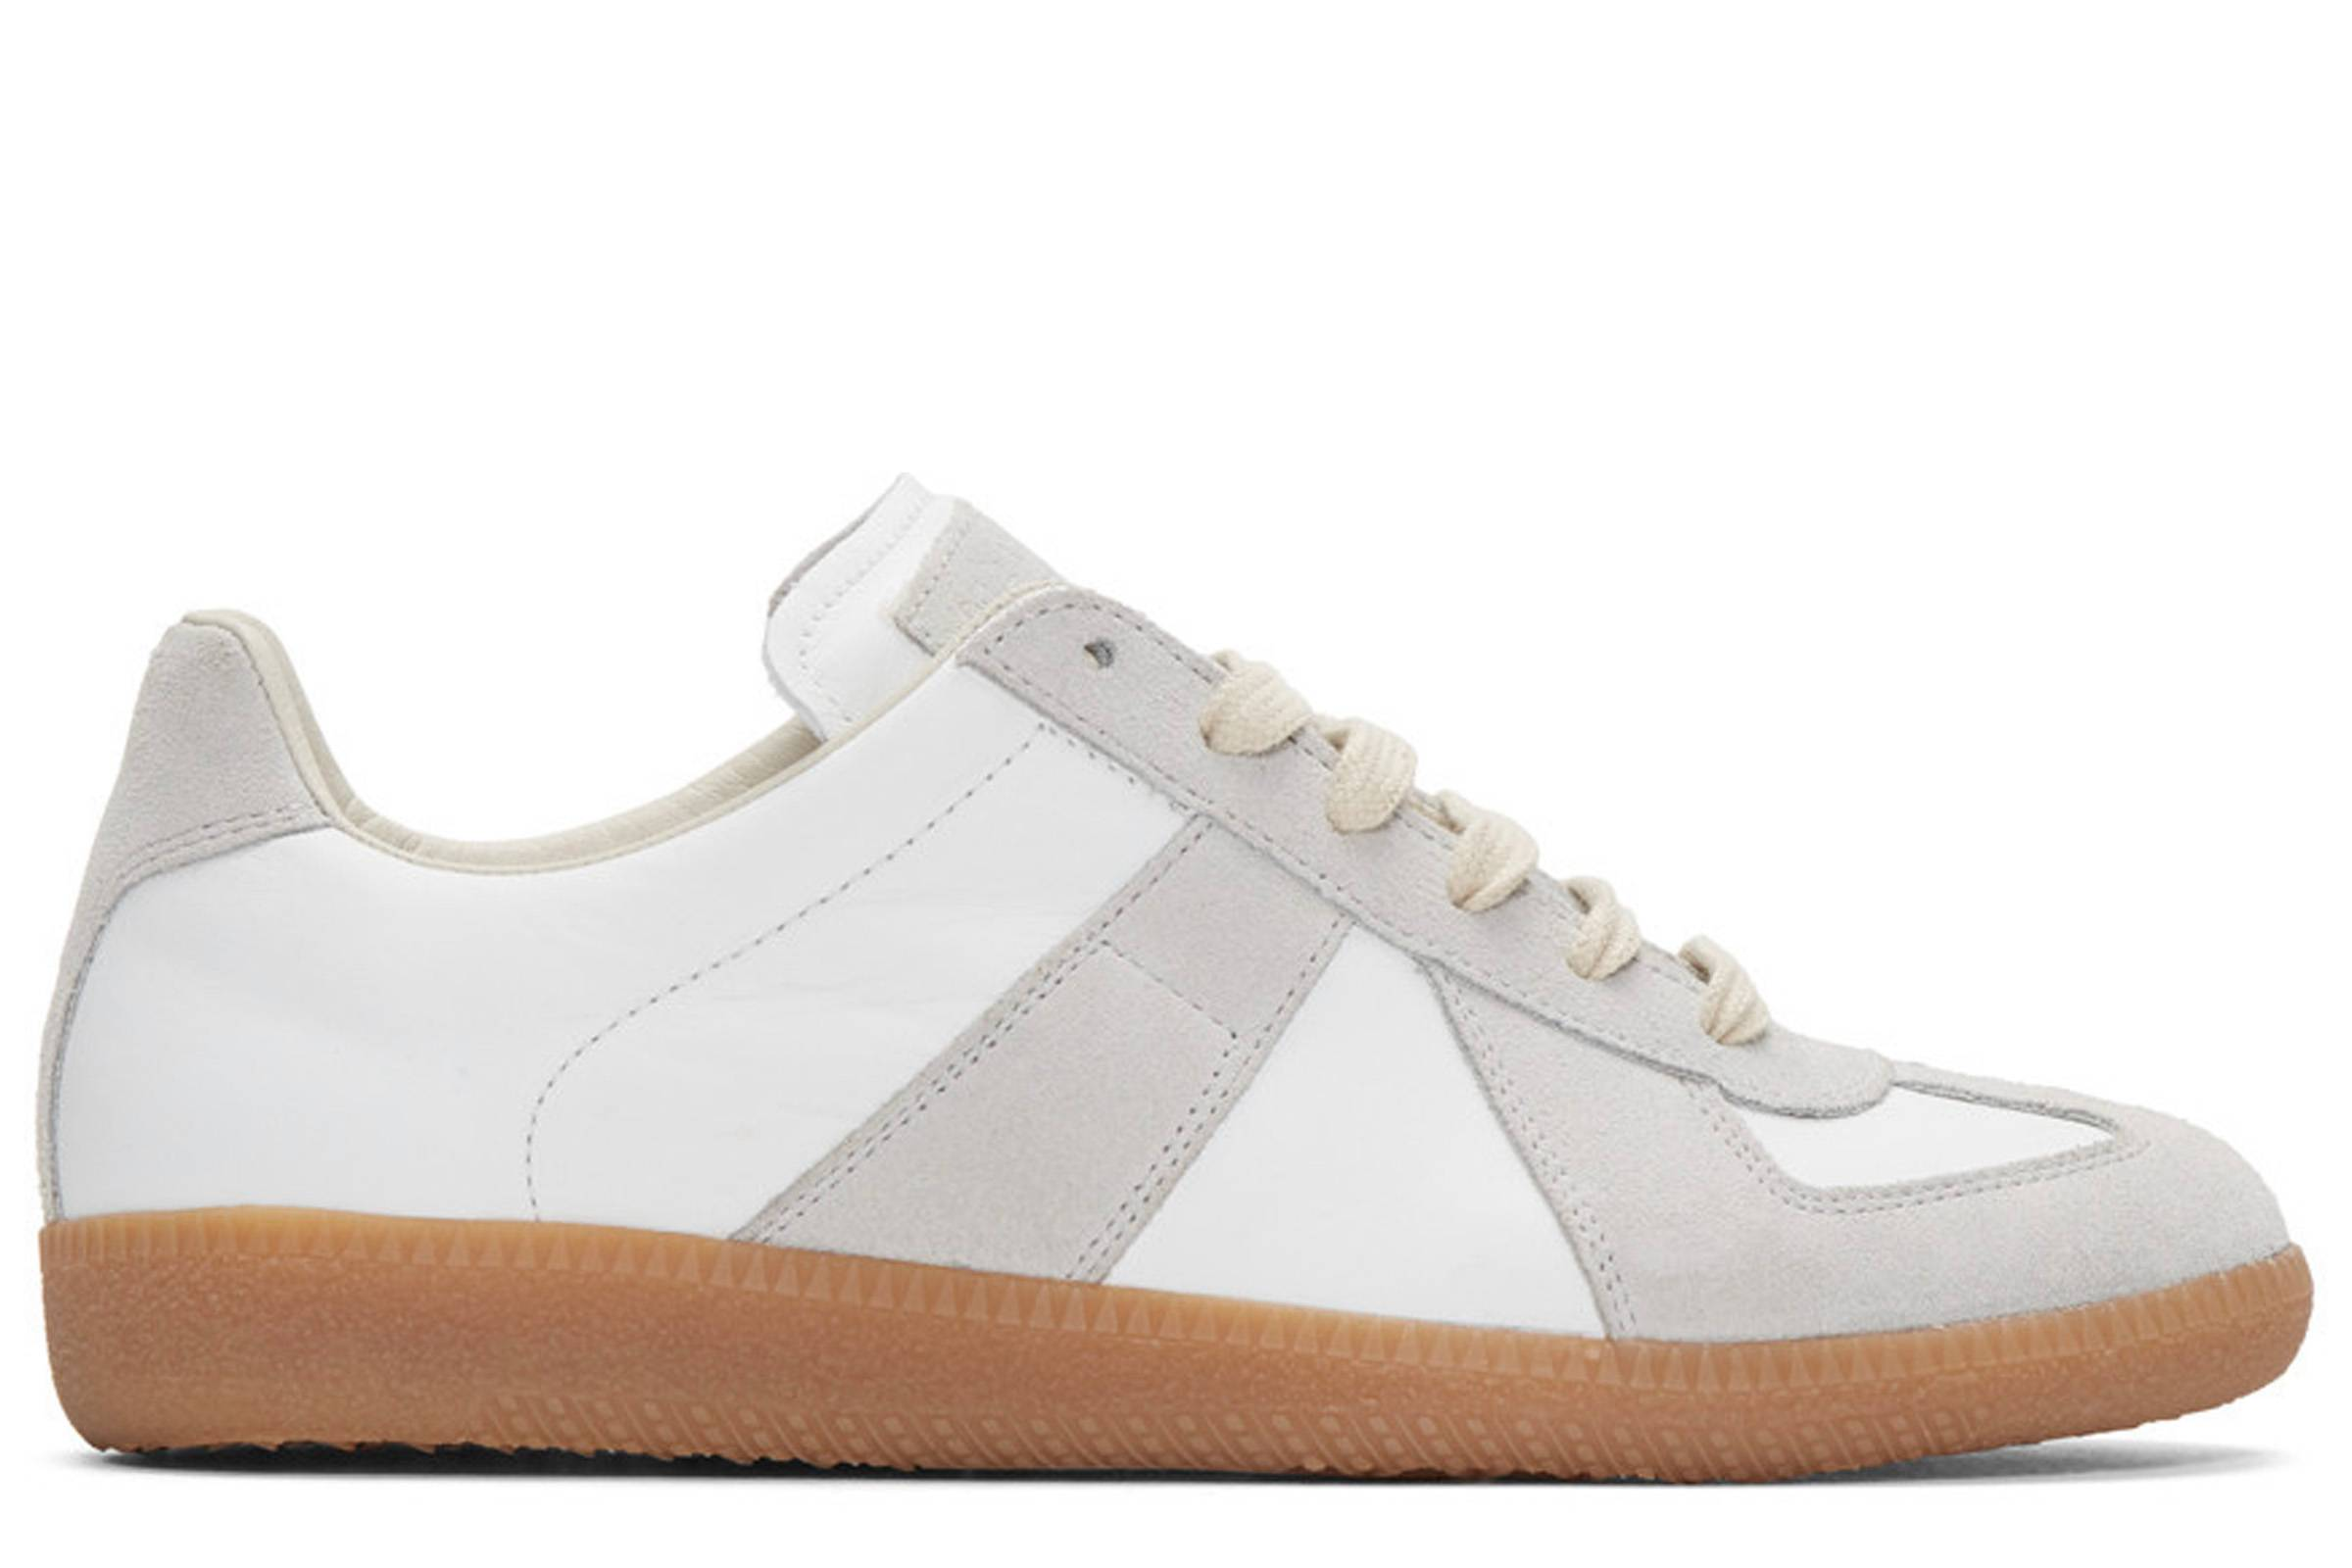 91de66c2089 The History of The German Army Trainer | Grailed